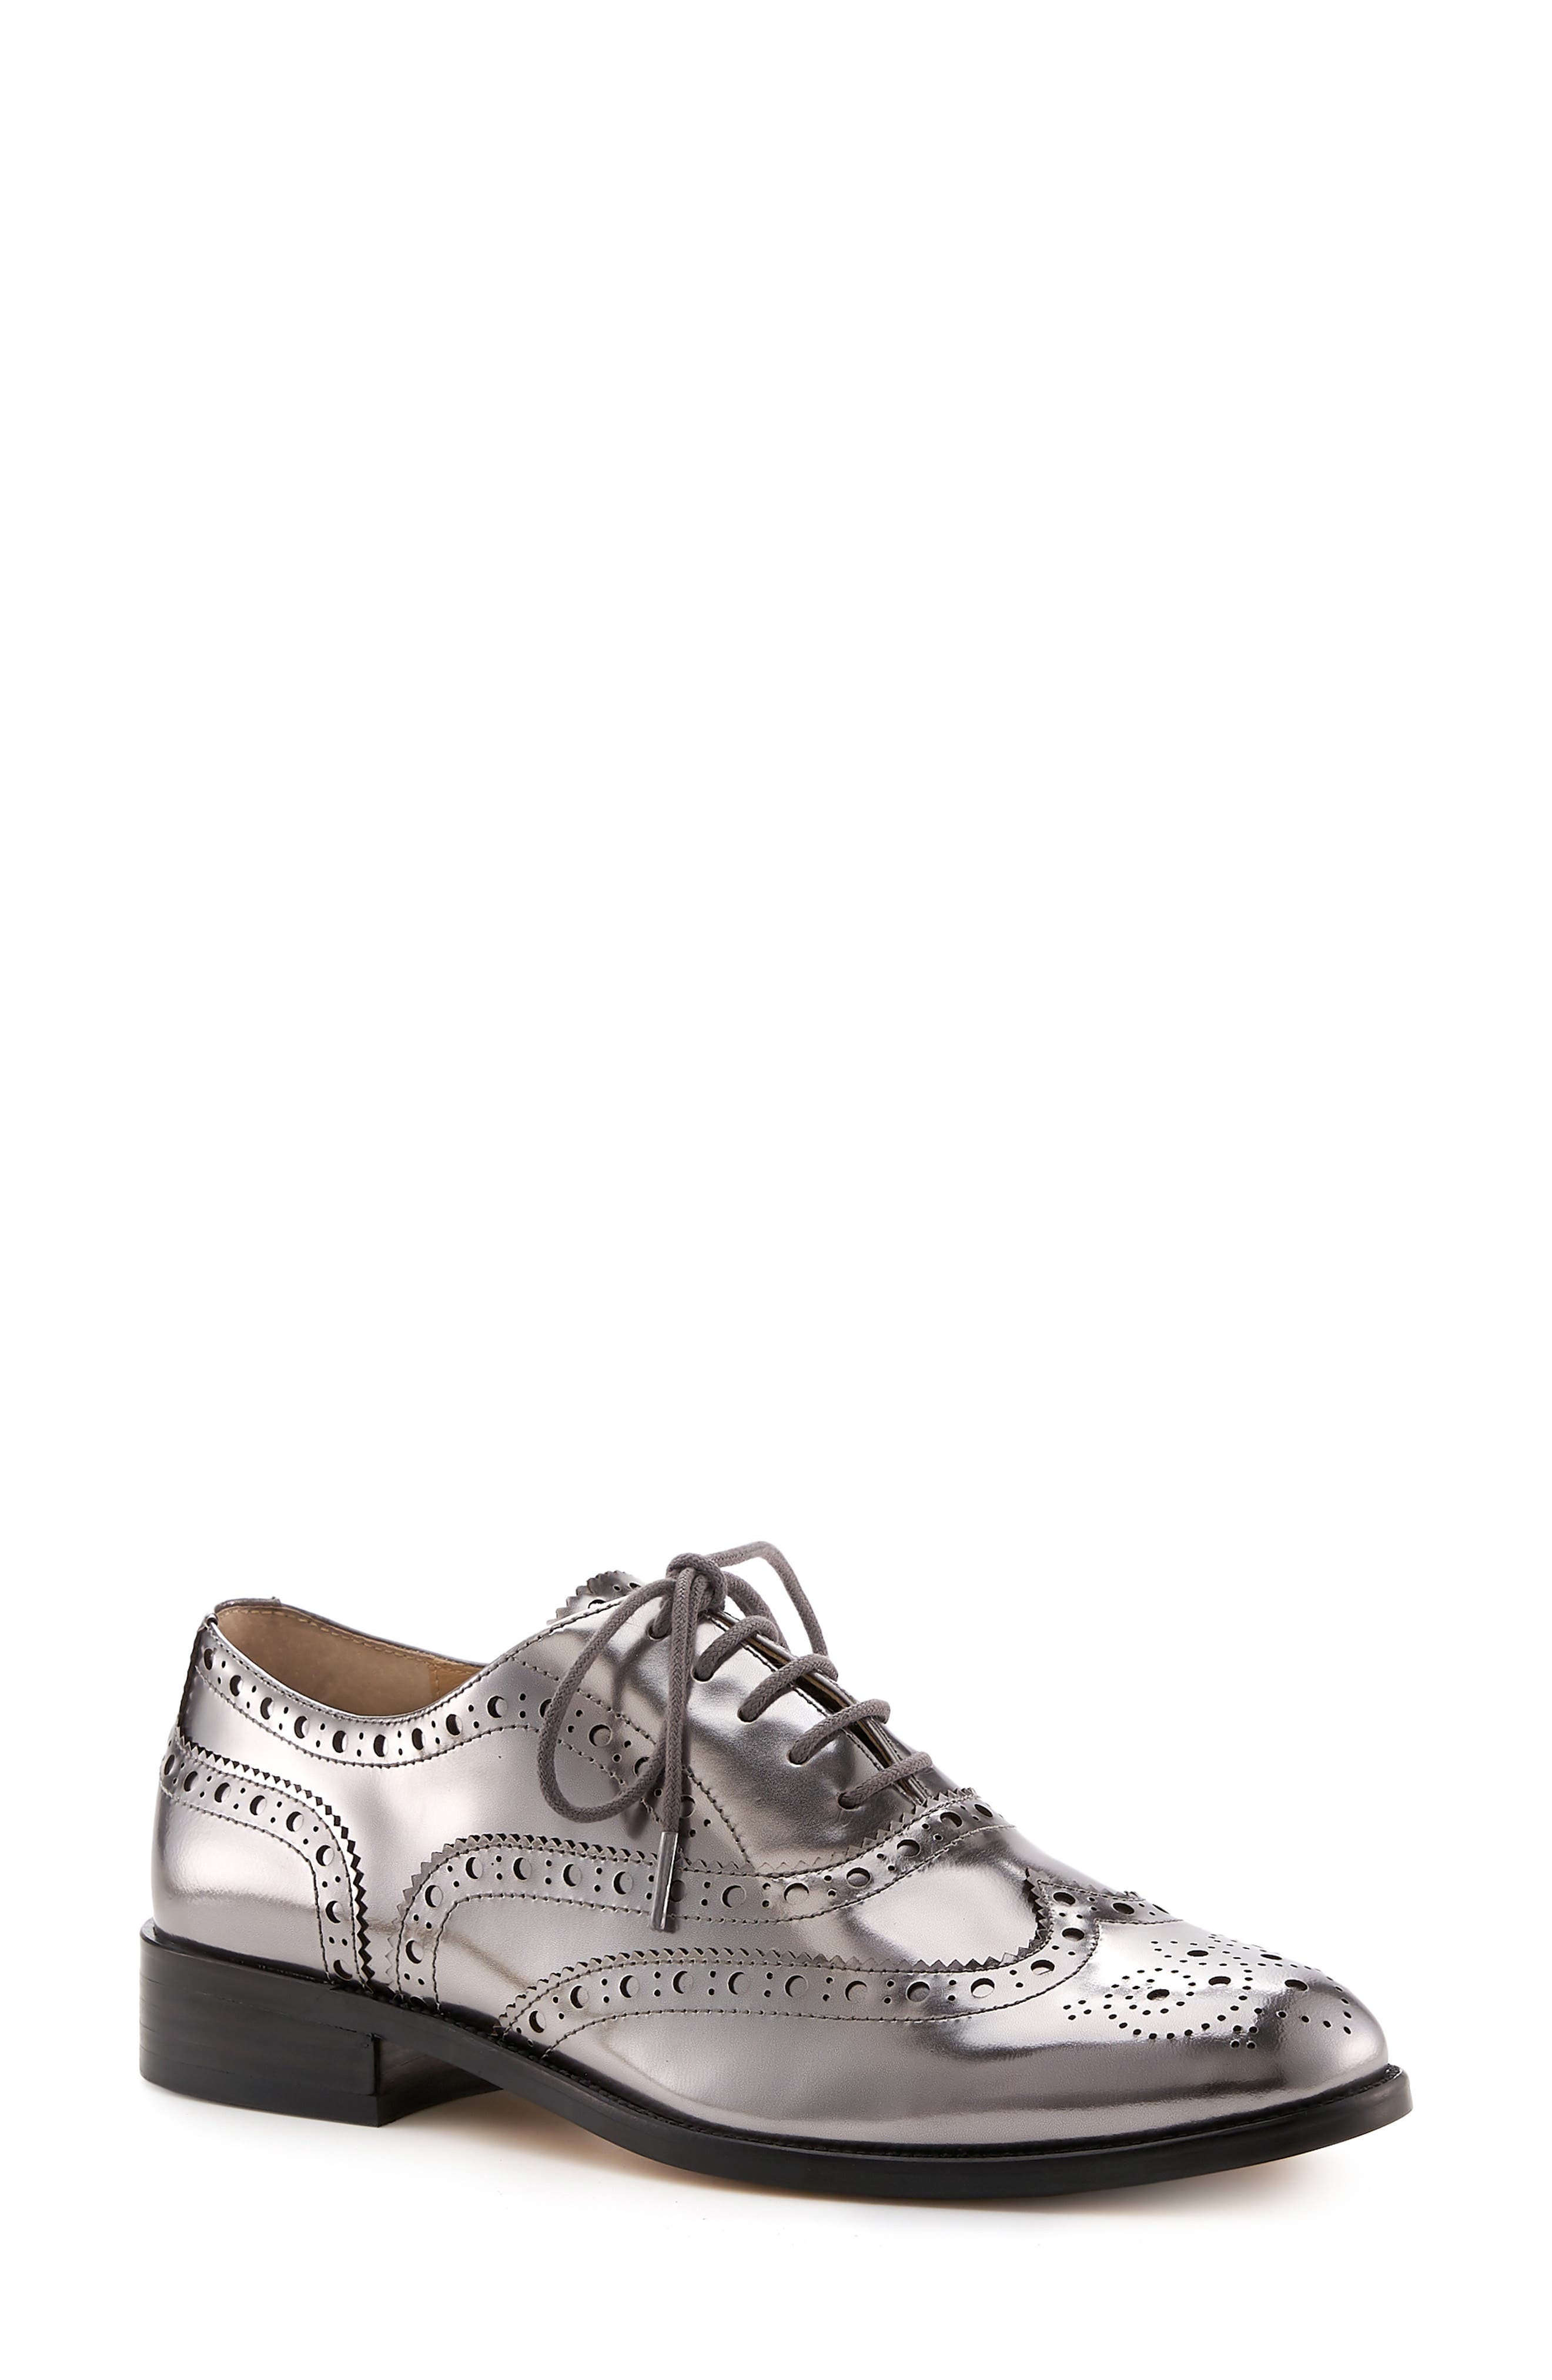 BOTKIER, Calista Metallic Wingtip Oxford, Main thumbnail 1, color, PEWTER METALLIC